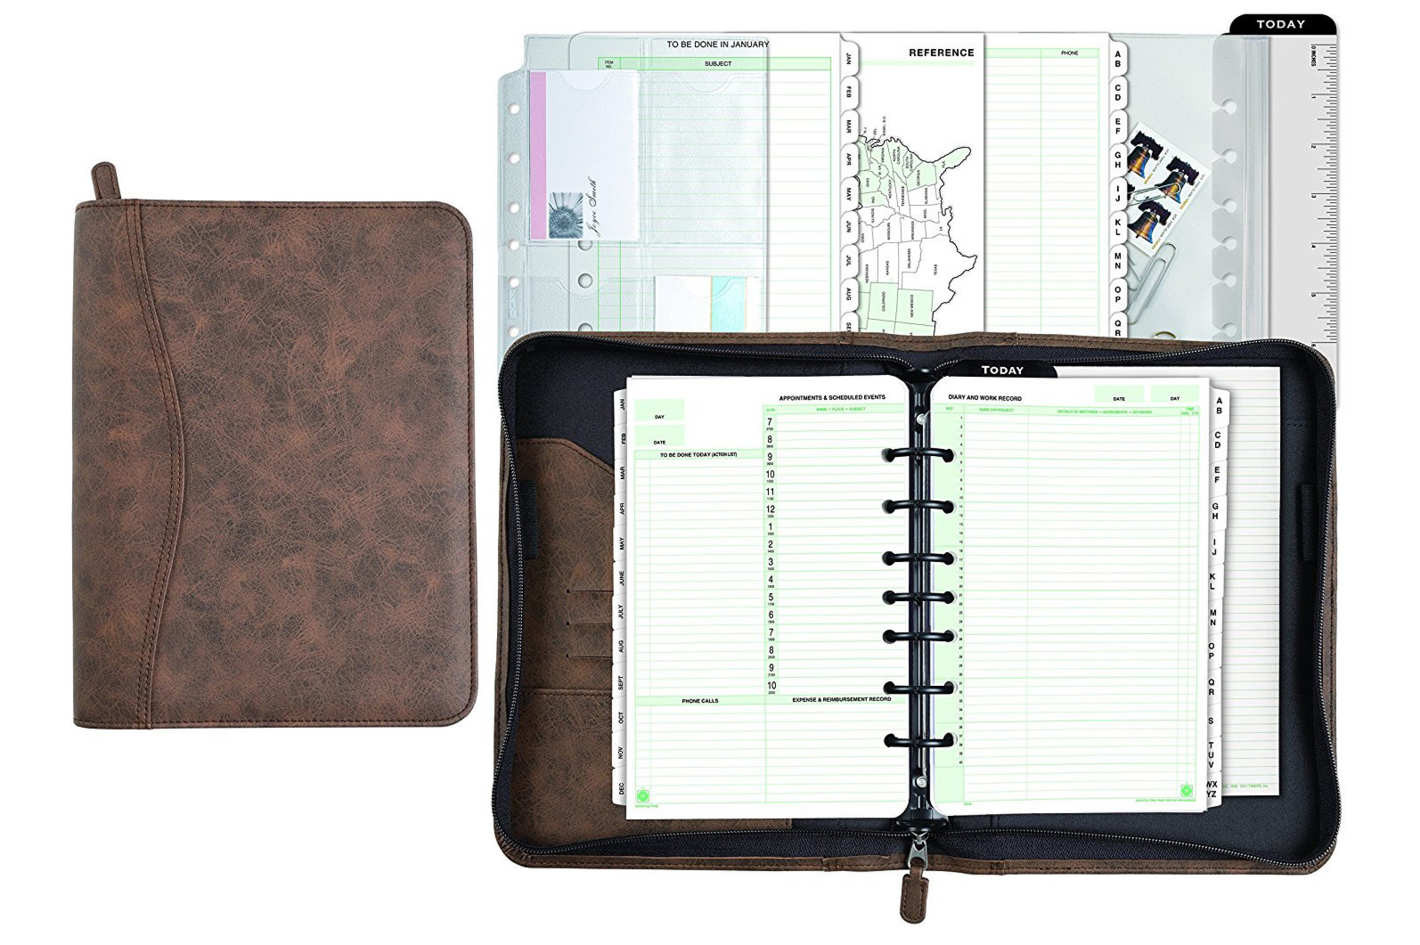 Best organizer Planner Inspirational 10 Best Planners for 2019 According to Productivity Experts